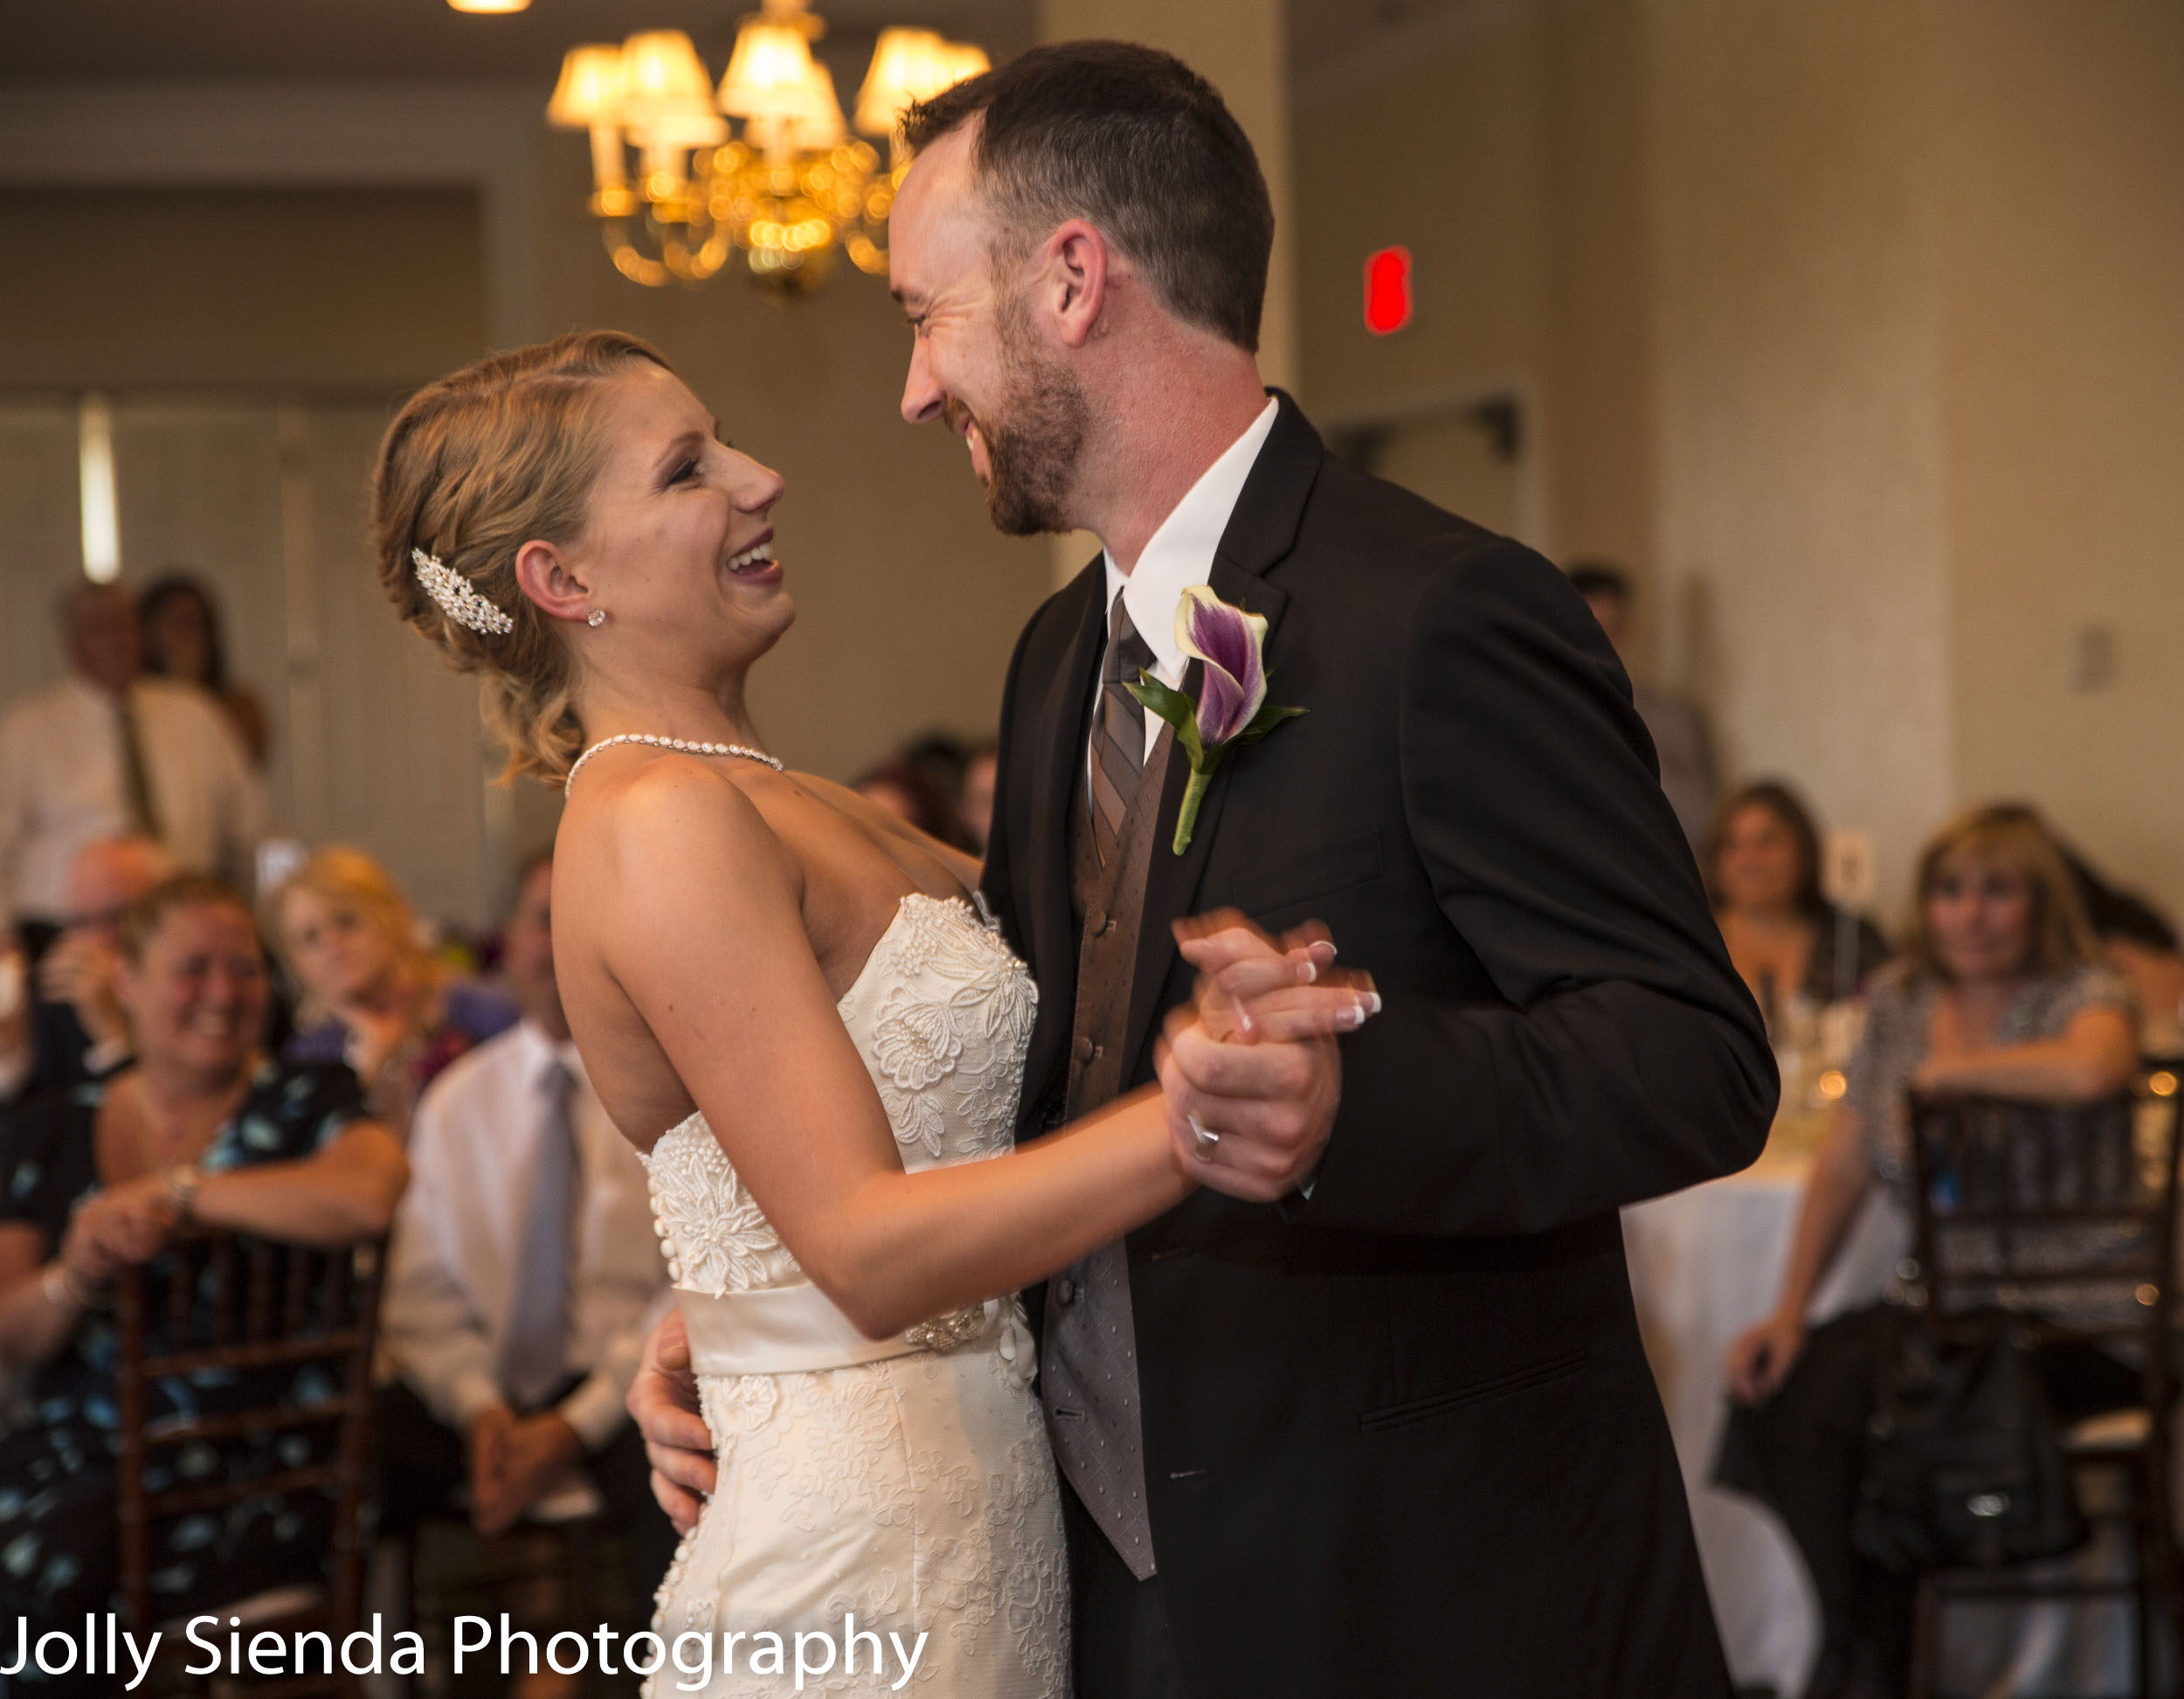 Portrait of a bride and groom dancing at their wedding reception